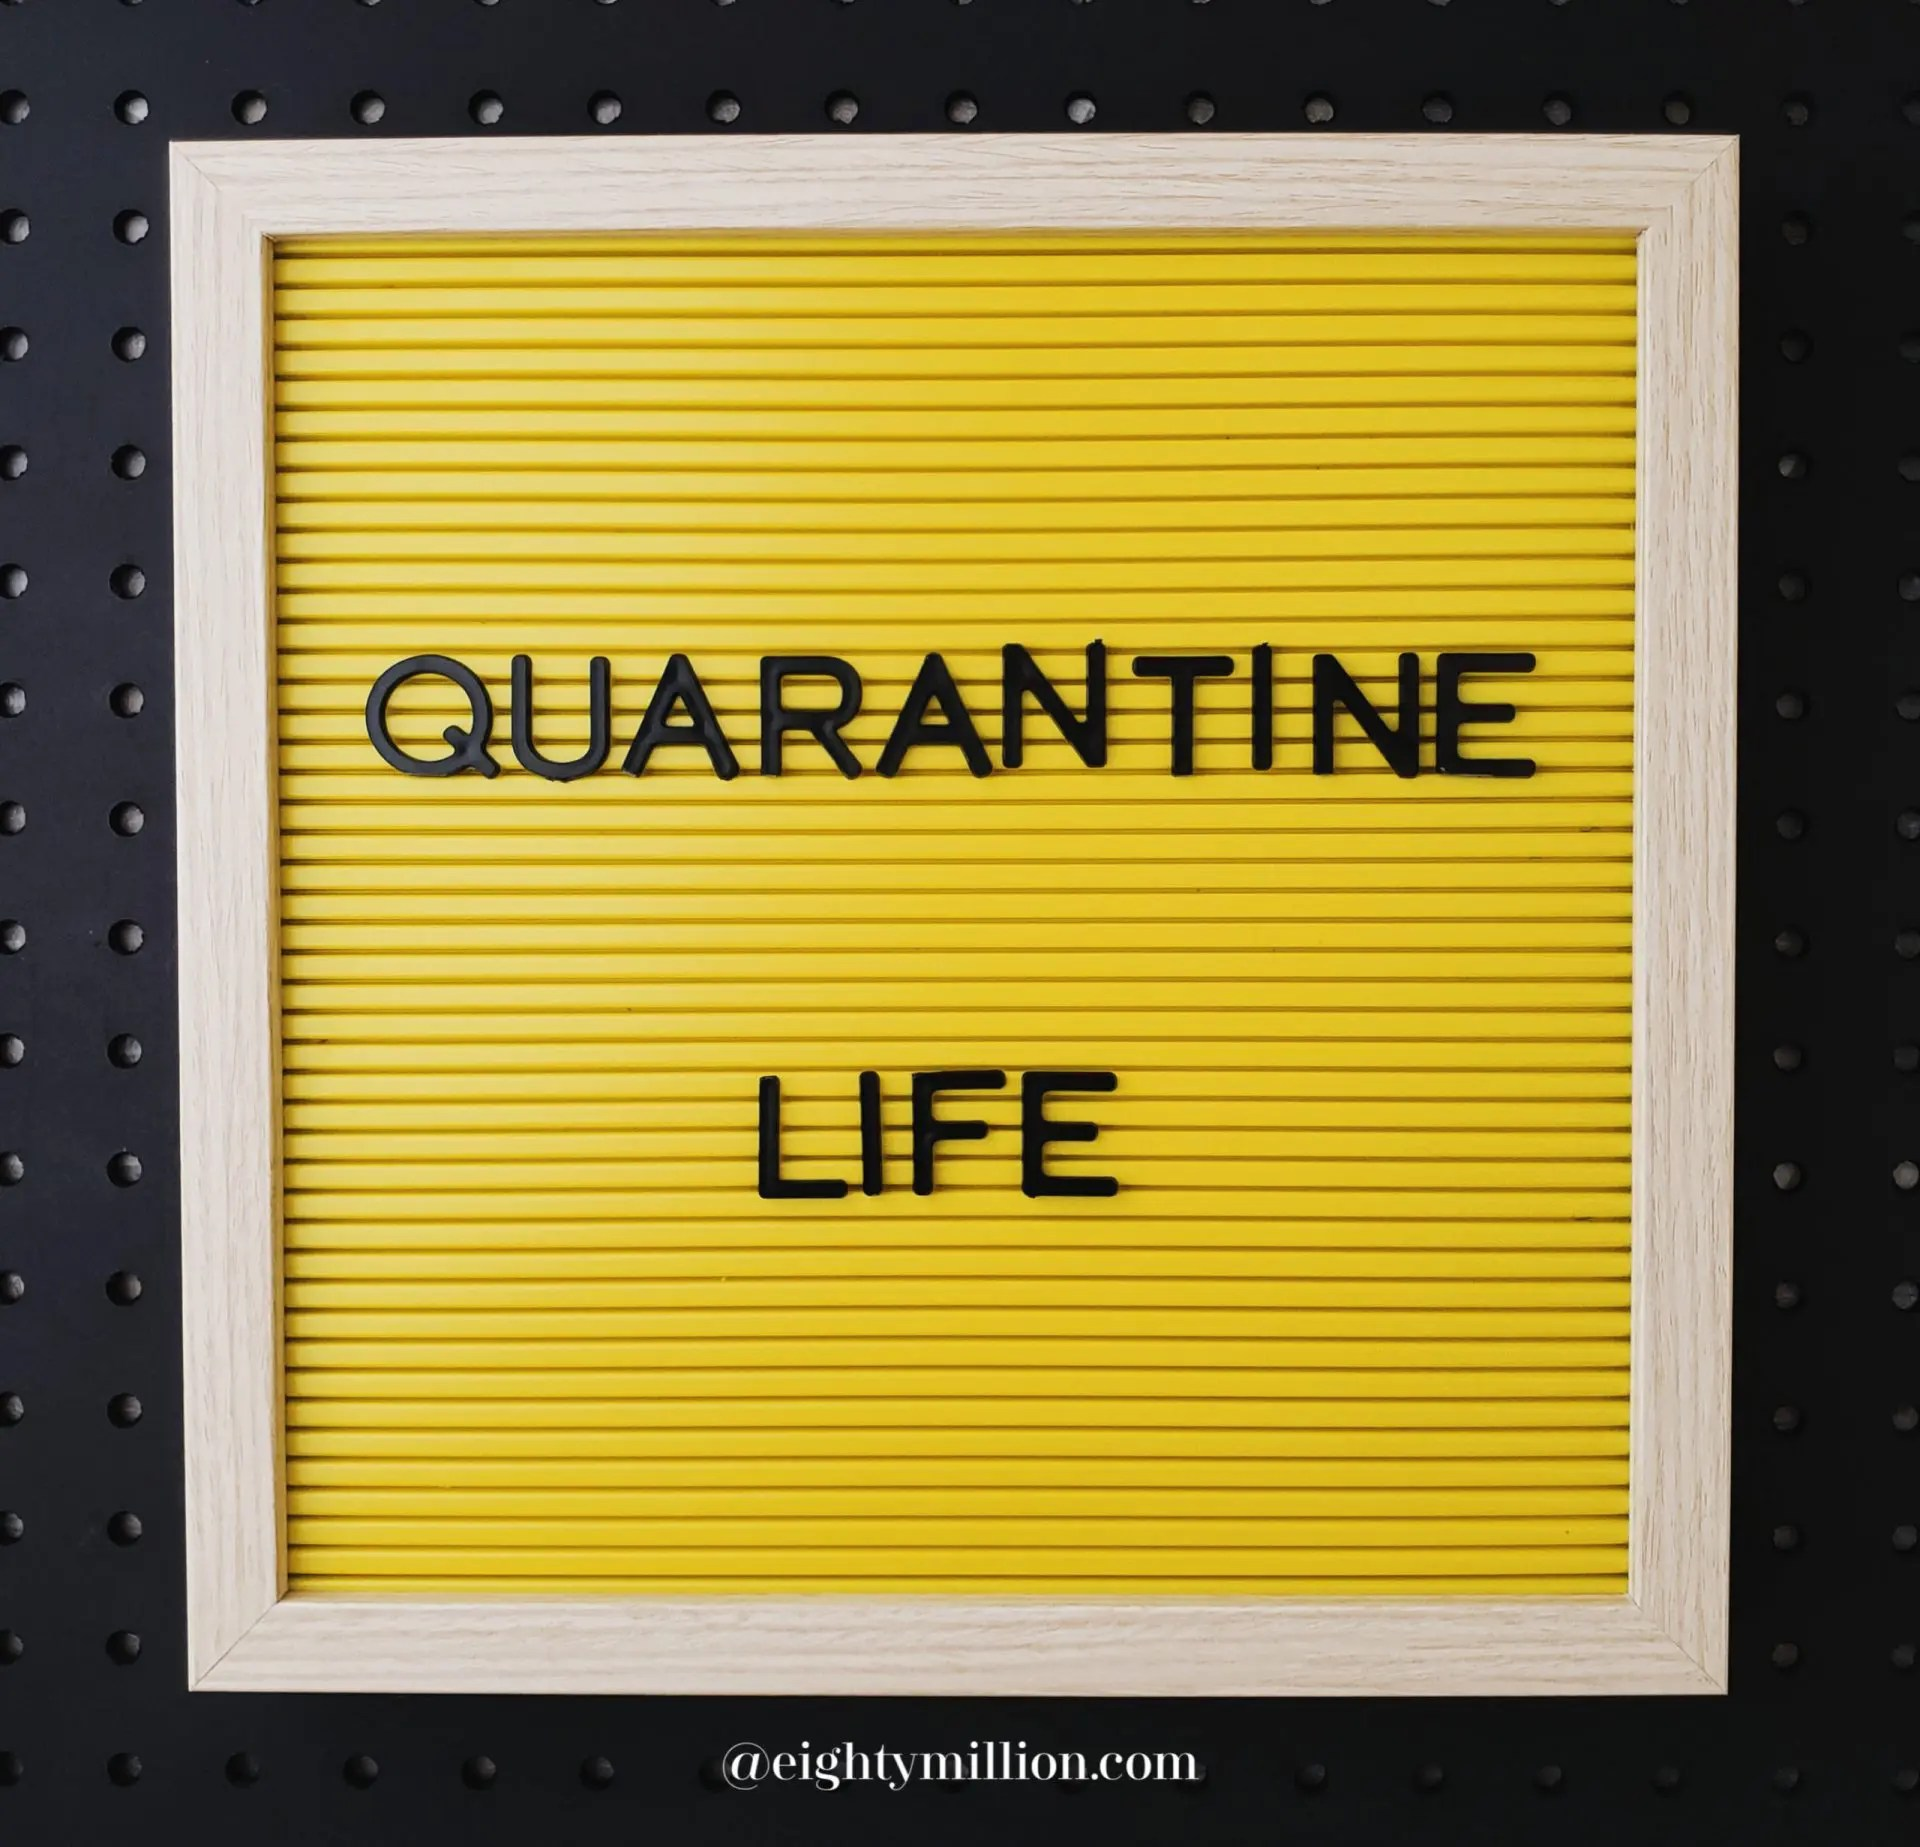 Quarantine Life 2020 Eightymillion